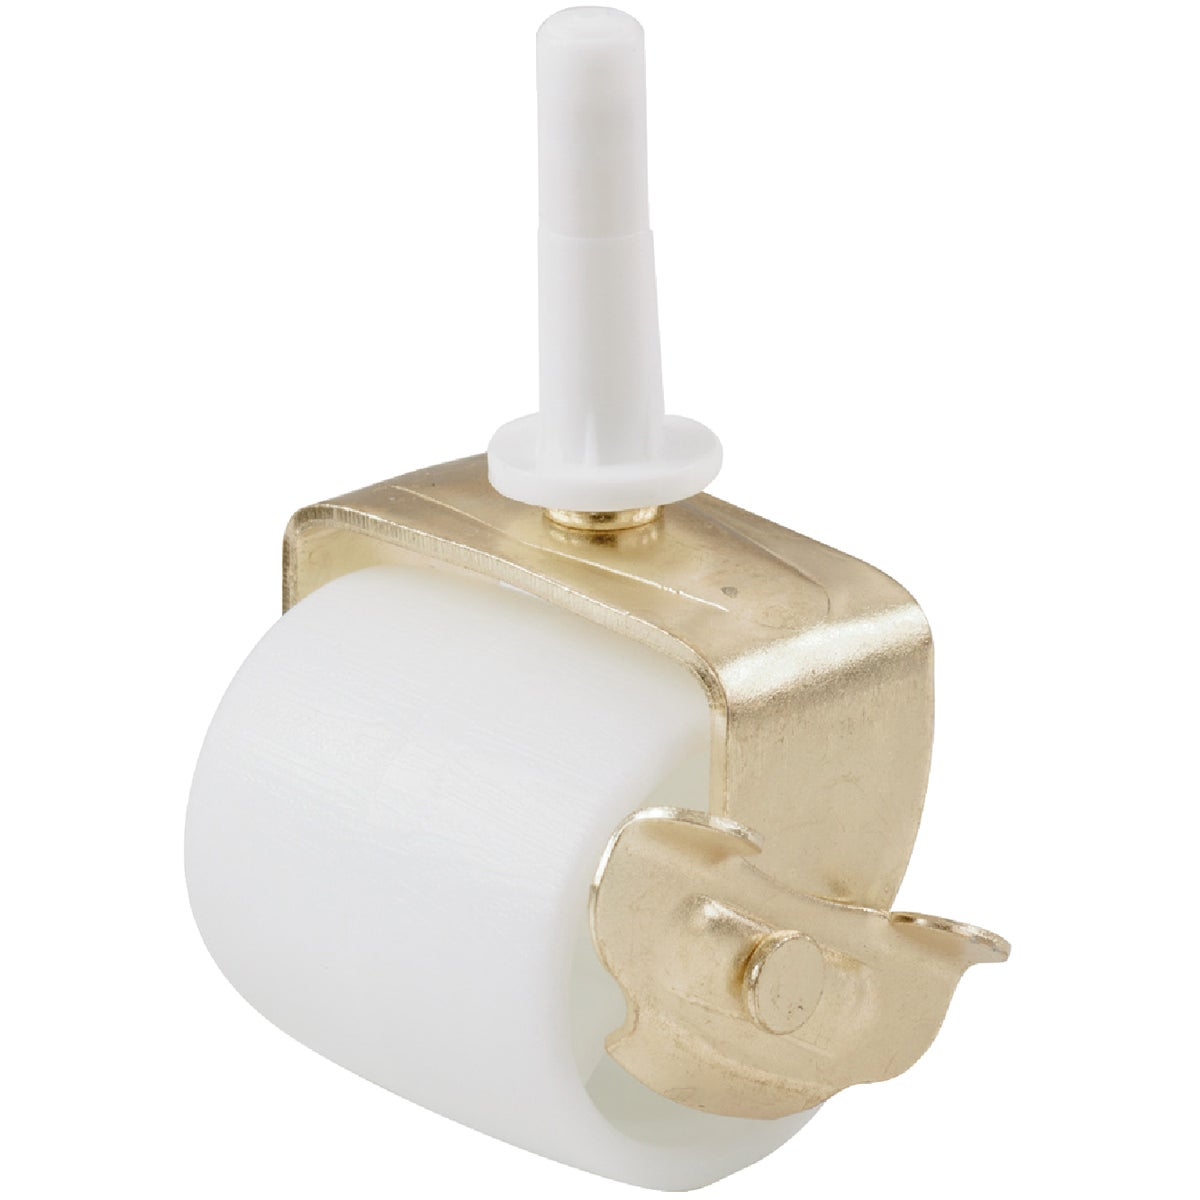 "2-1/8"" BED CASTER W/BRK - 226521 by Shepherd Hardware"